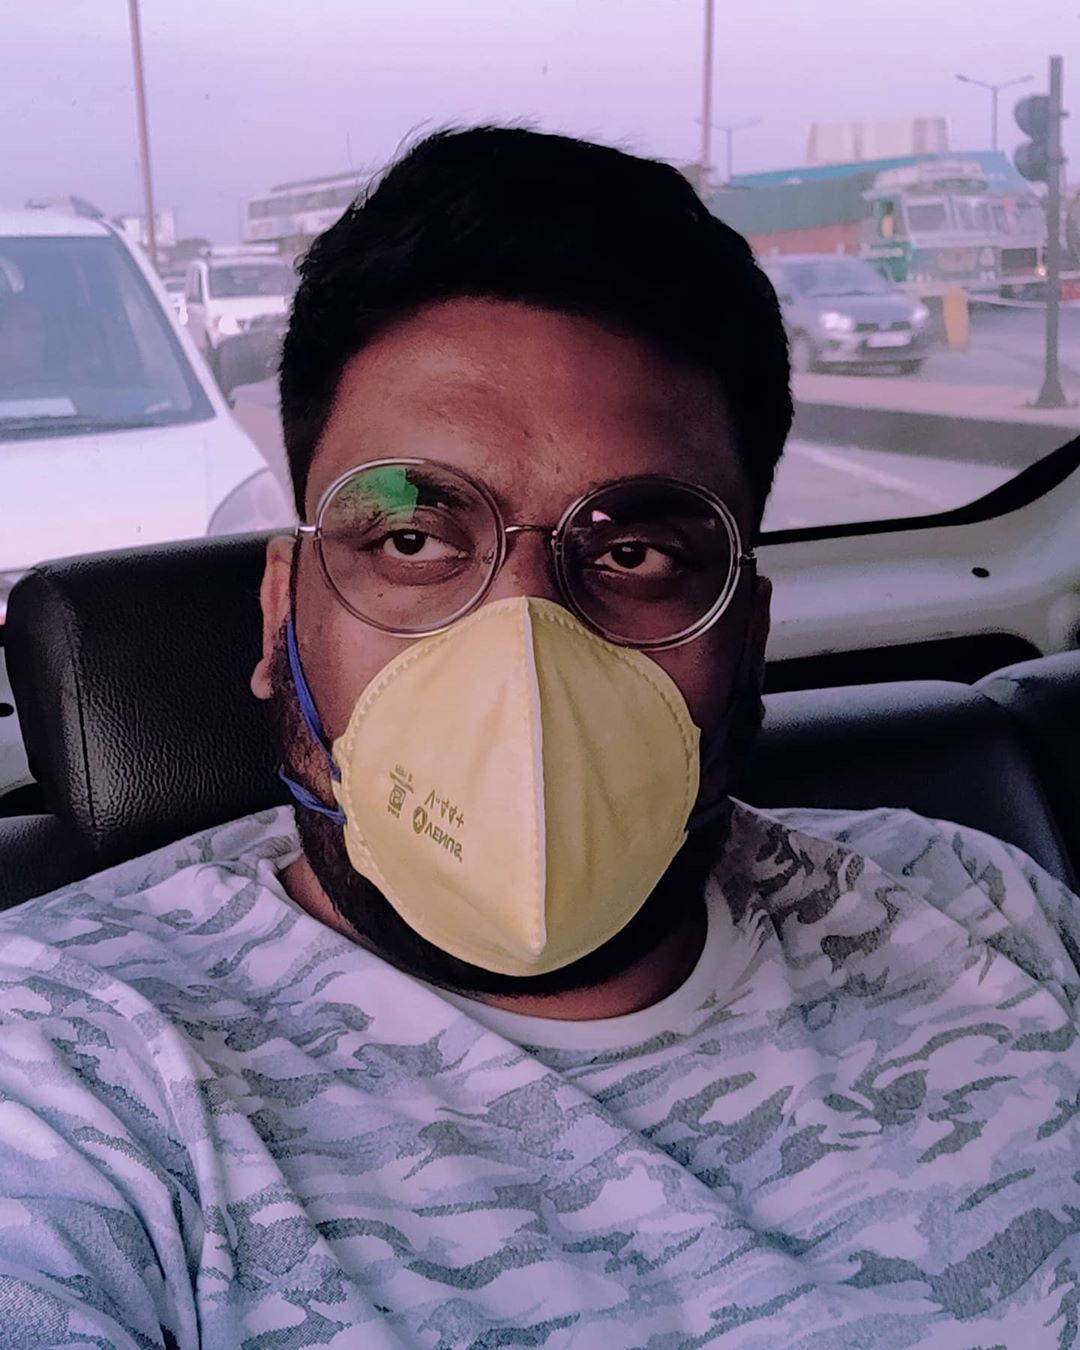 #Maskfie  #StaySafe